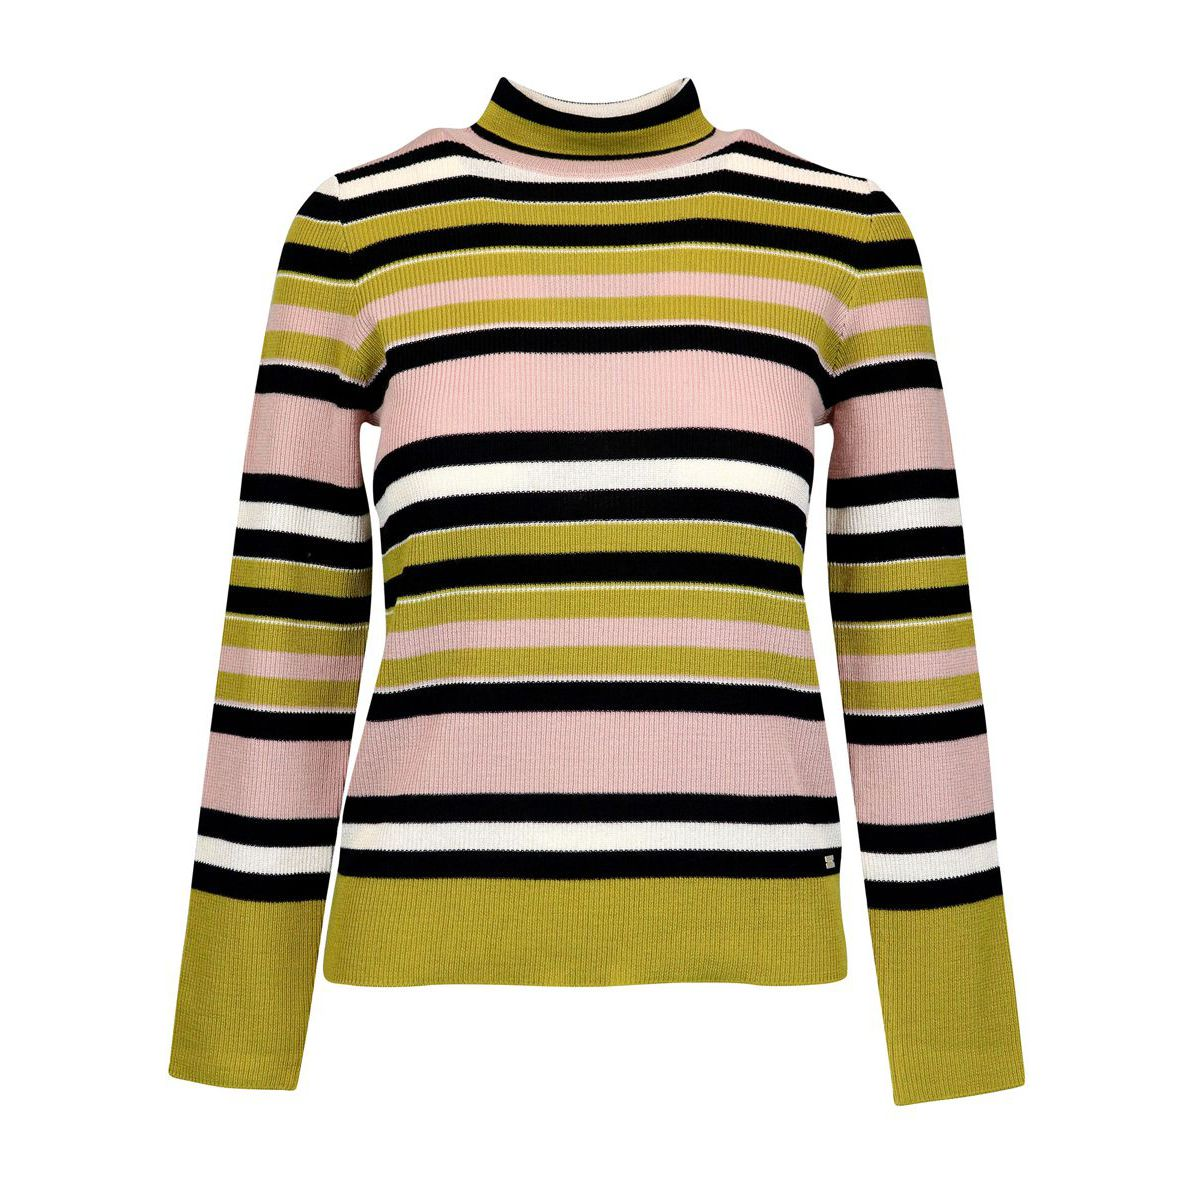 Wool blend turtleneck with striped pattern Rigato Nenette